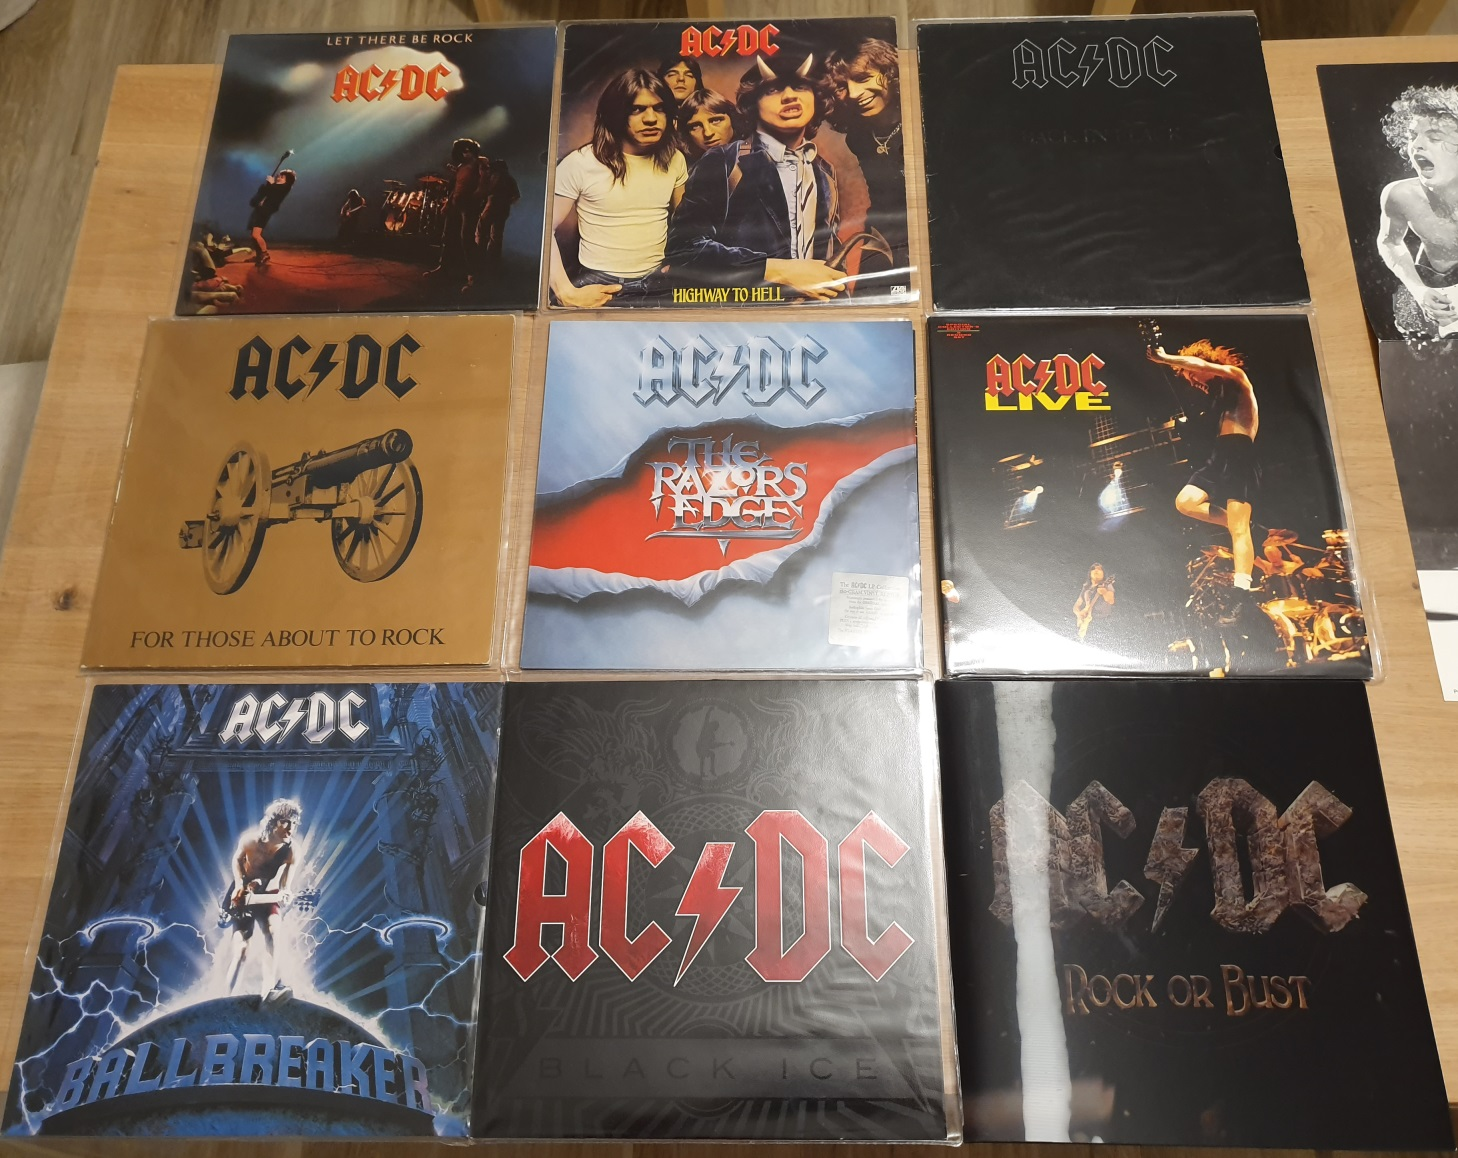 ACDC_albums1.jpg